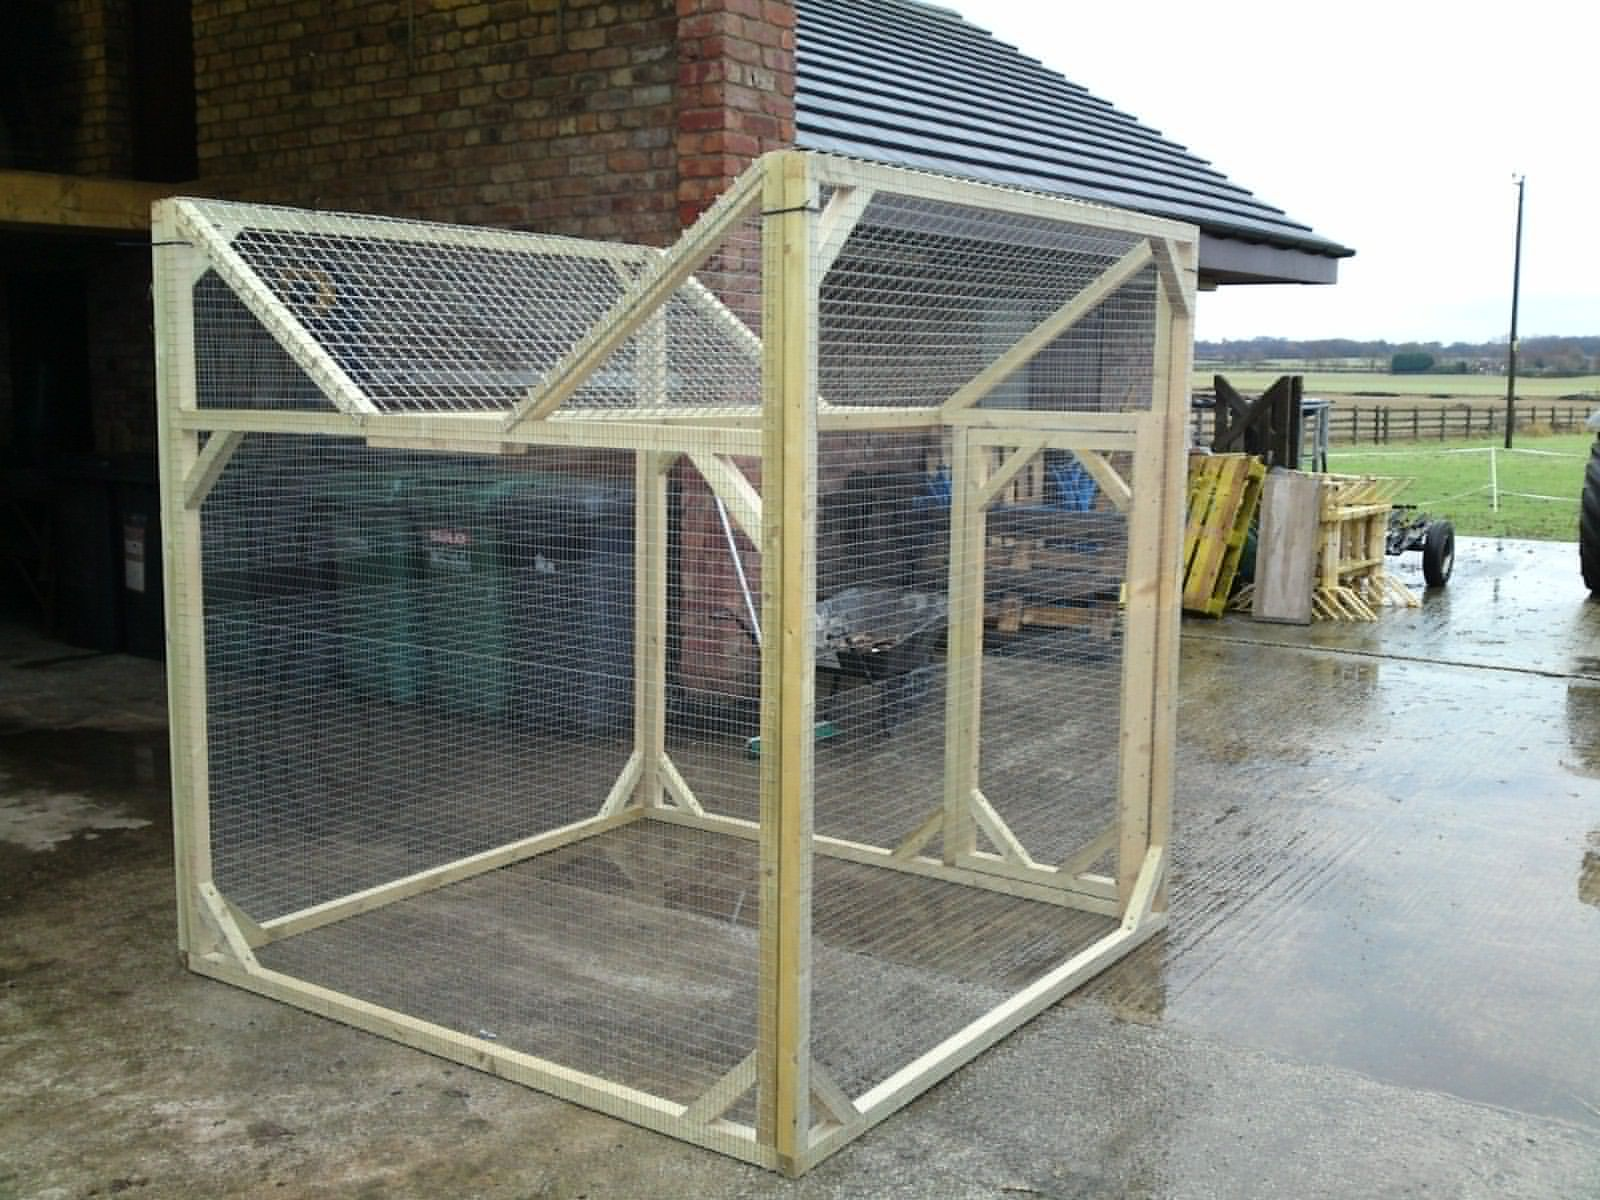 And Automatic Trap Homemade Pigeon Traps Repellers That